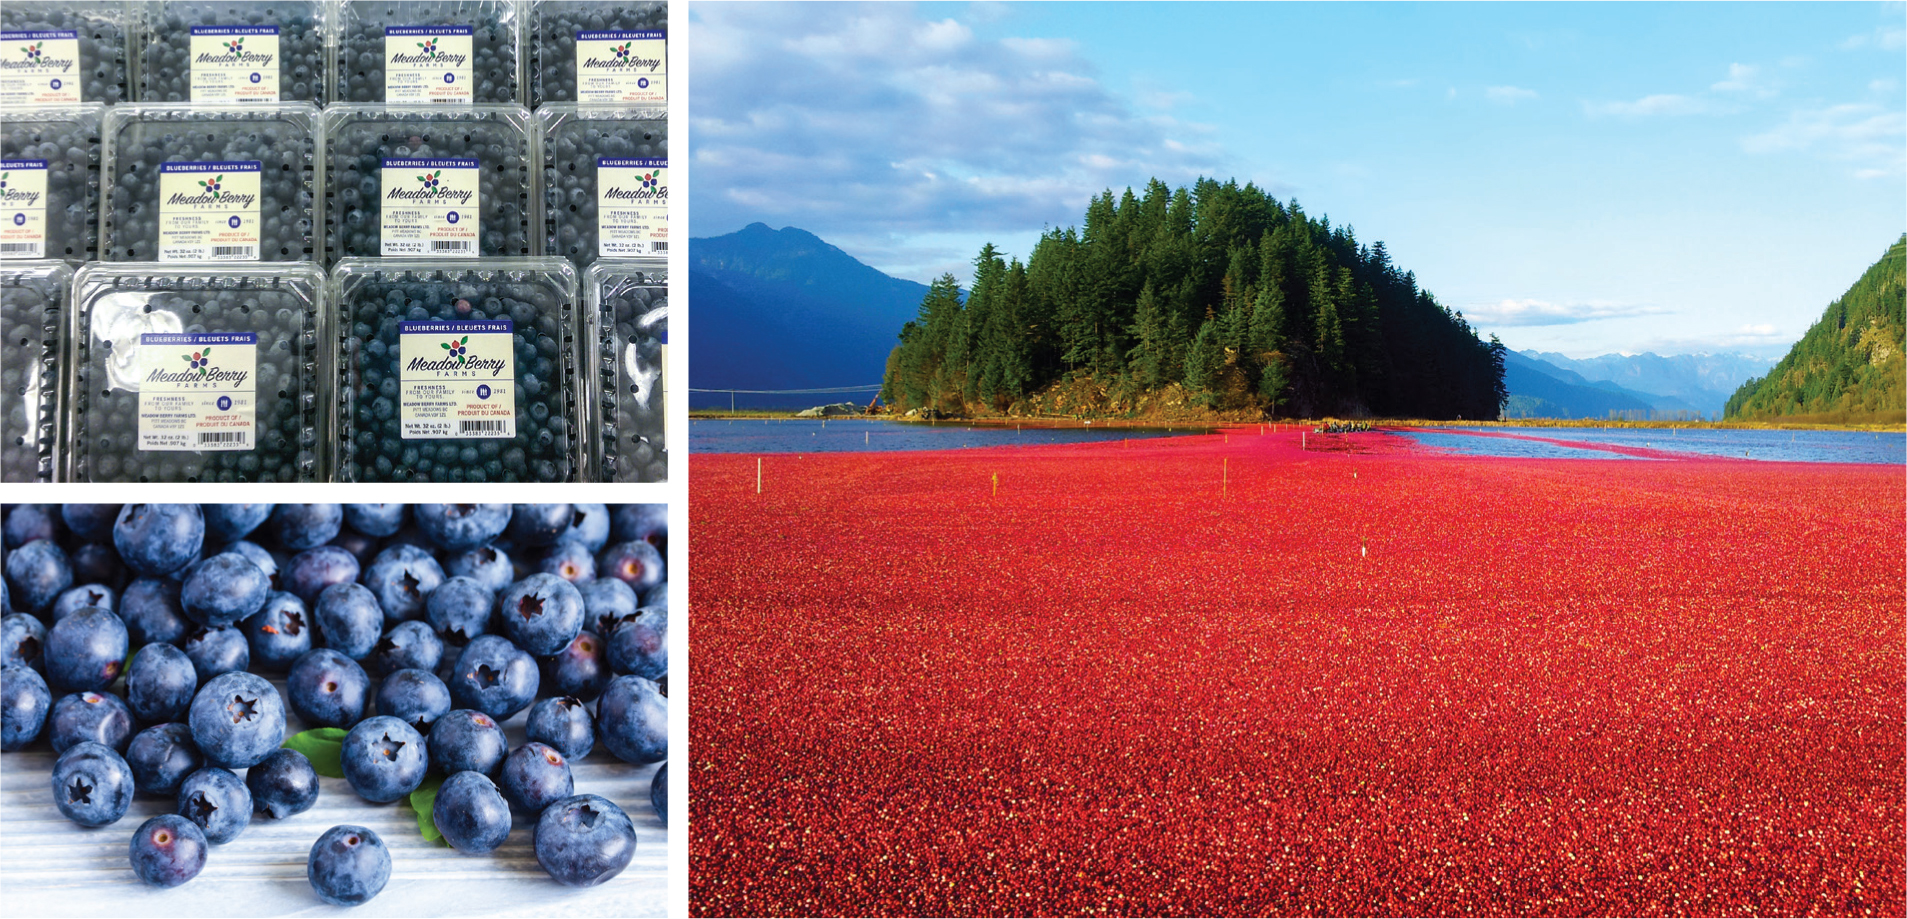 Meadow Berry Farms images